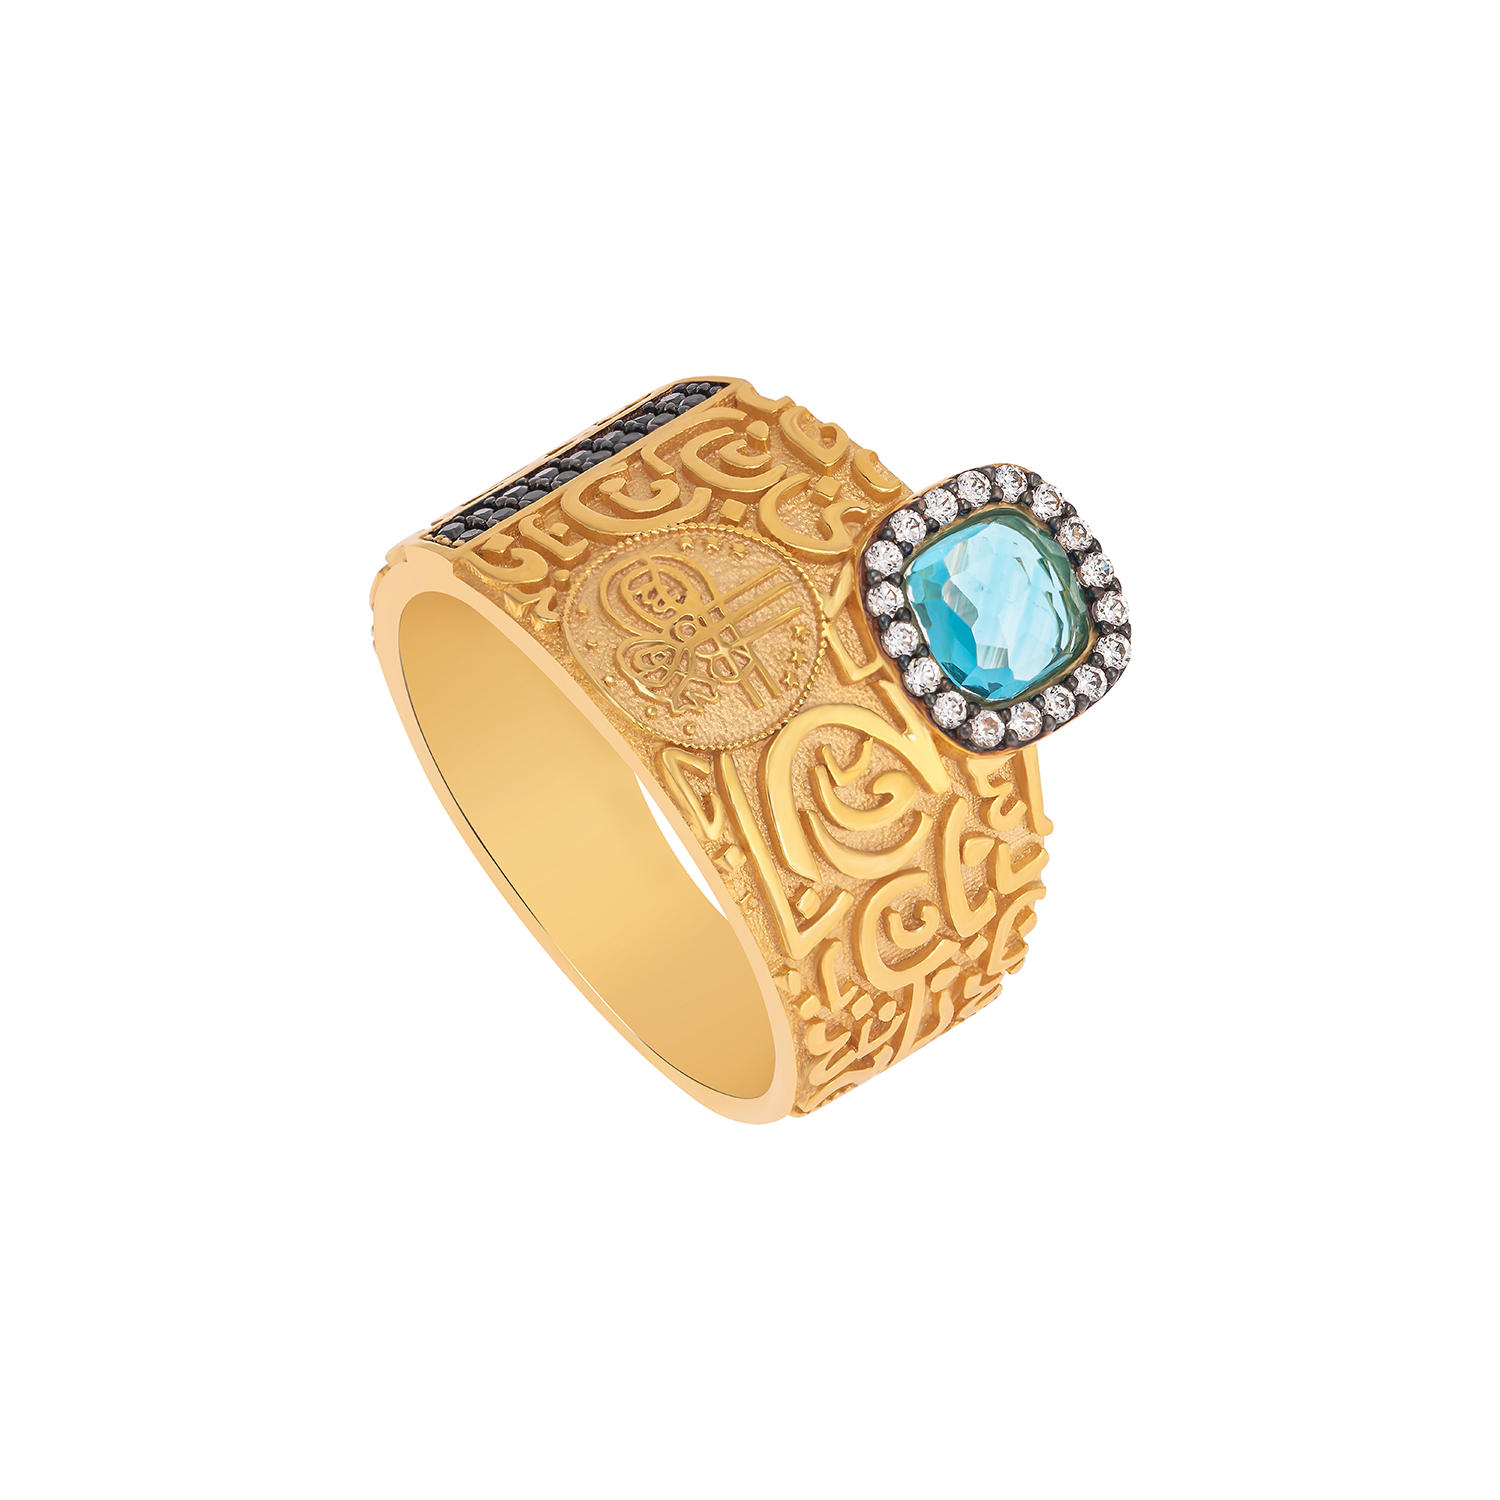 21K Traditional Gold Ring